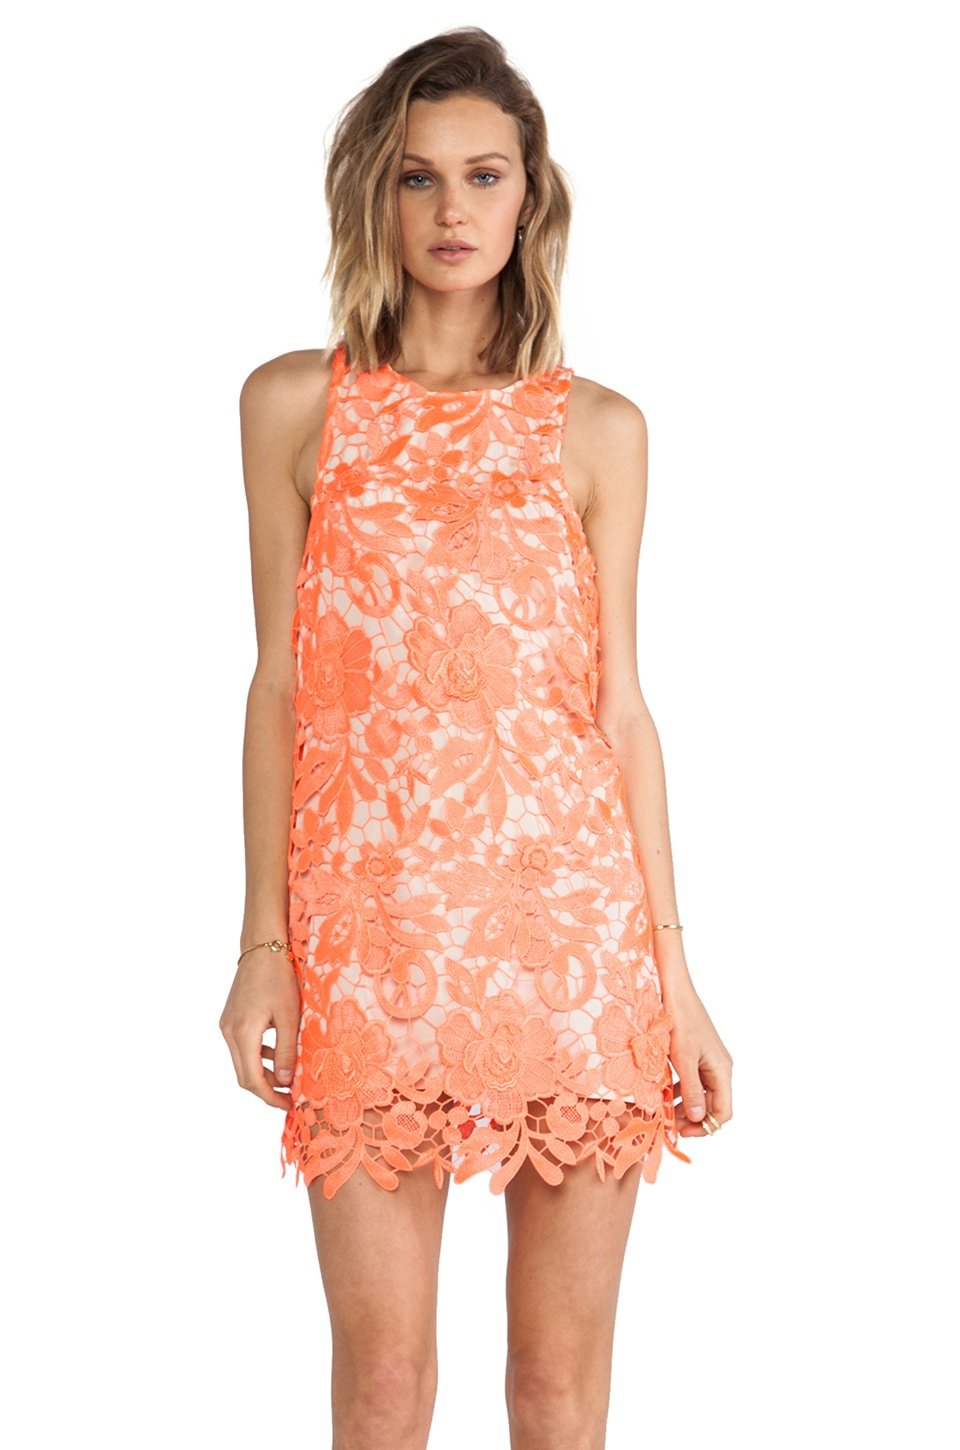 C/MEO Spellbound Dress in Neon Tangerine